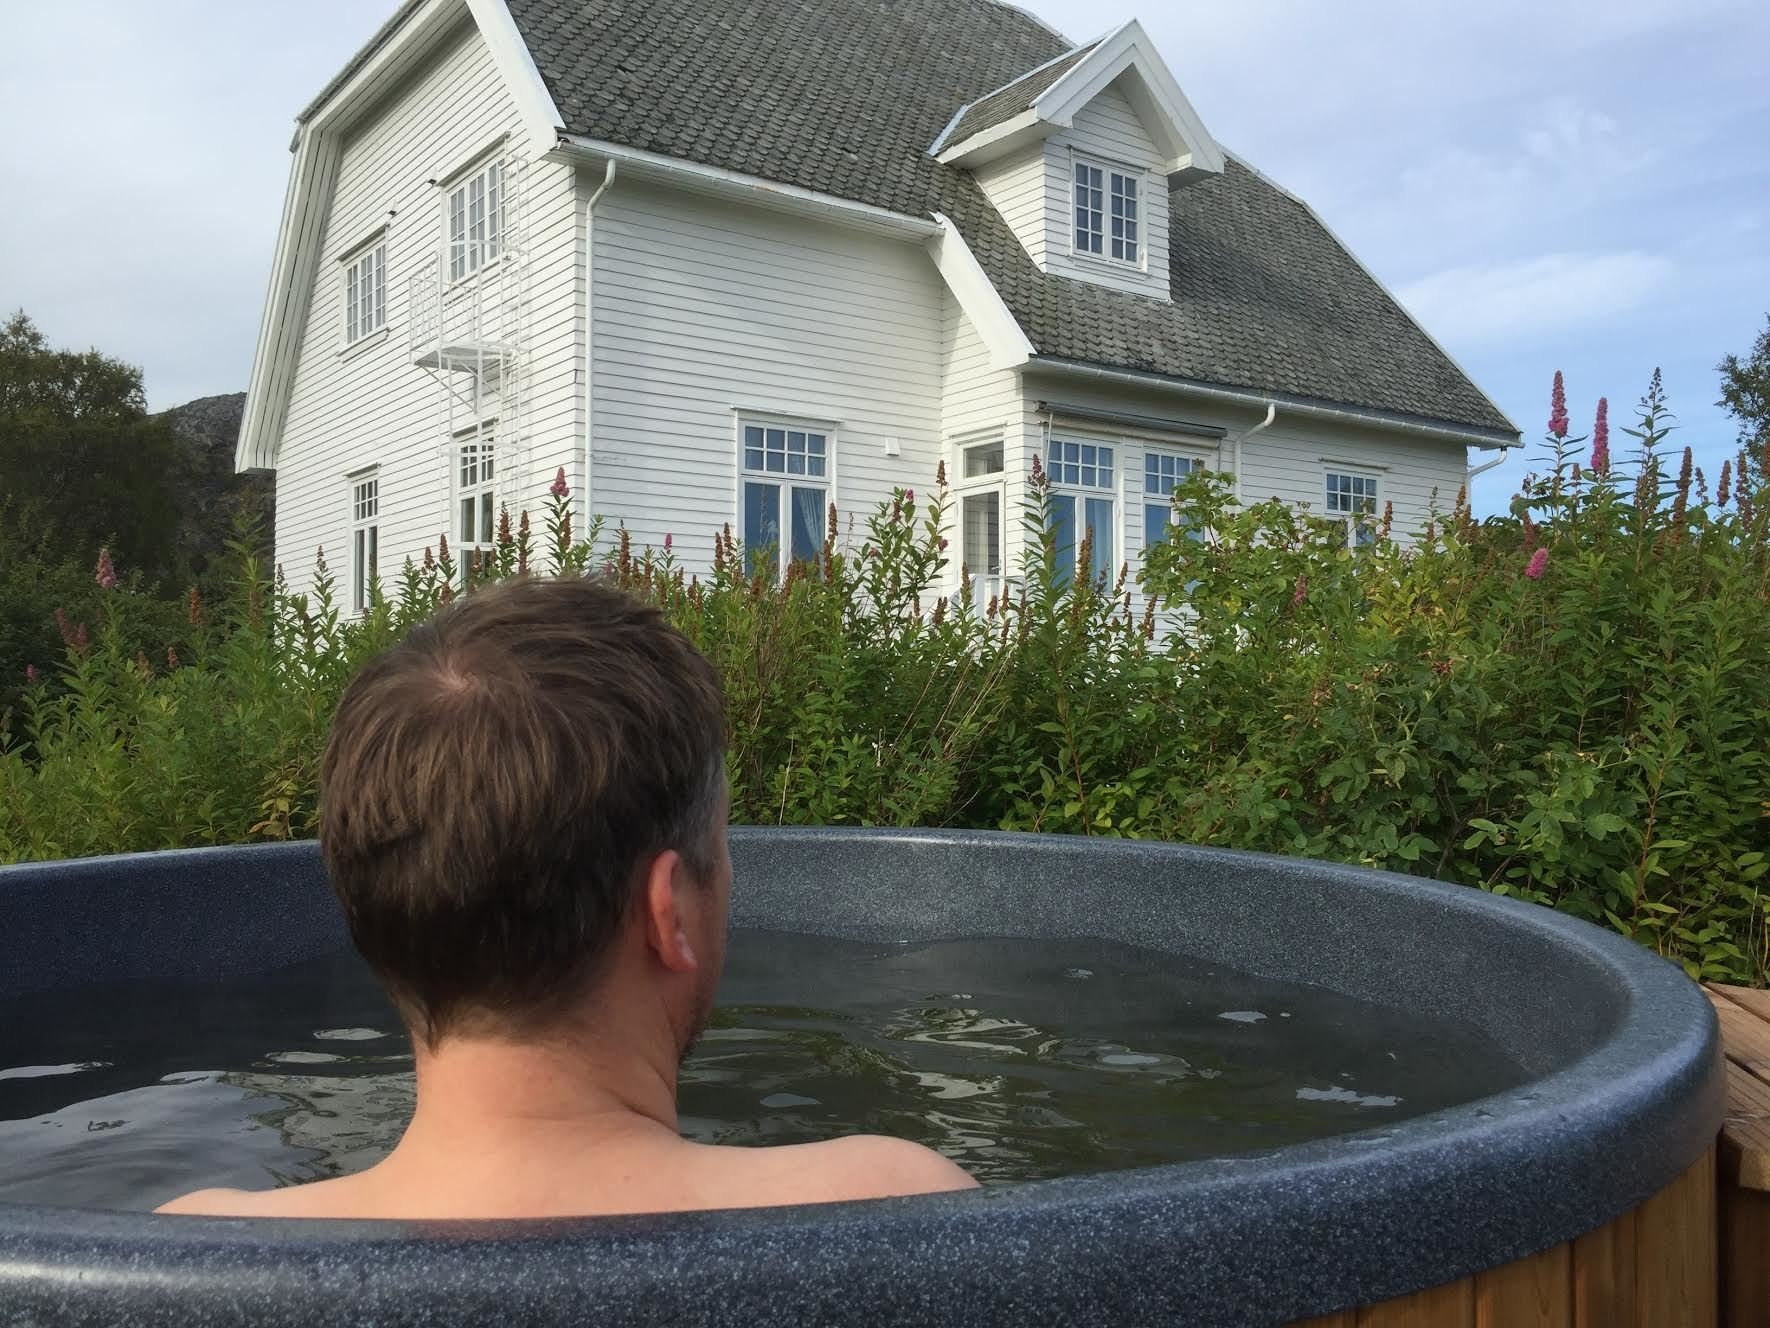 Warm bath in the garden at Arctic Garden